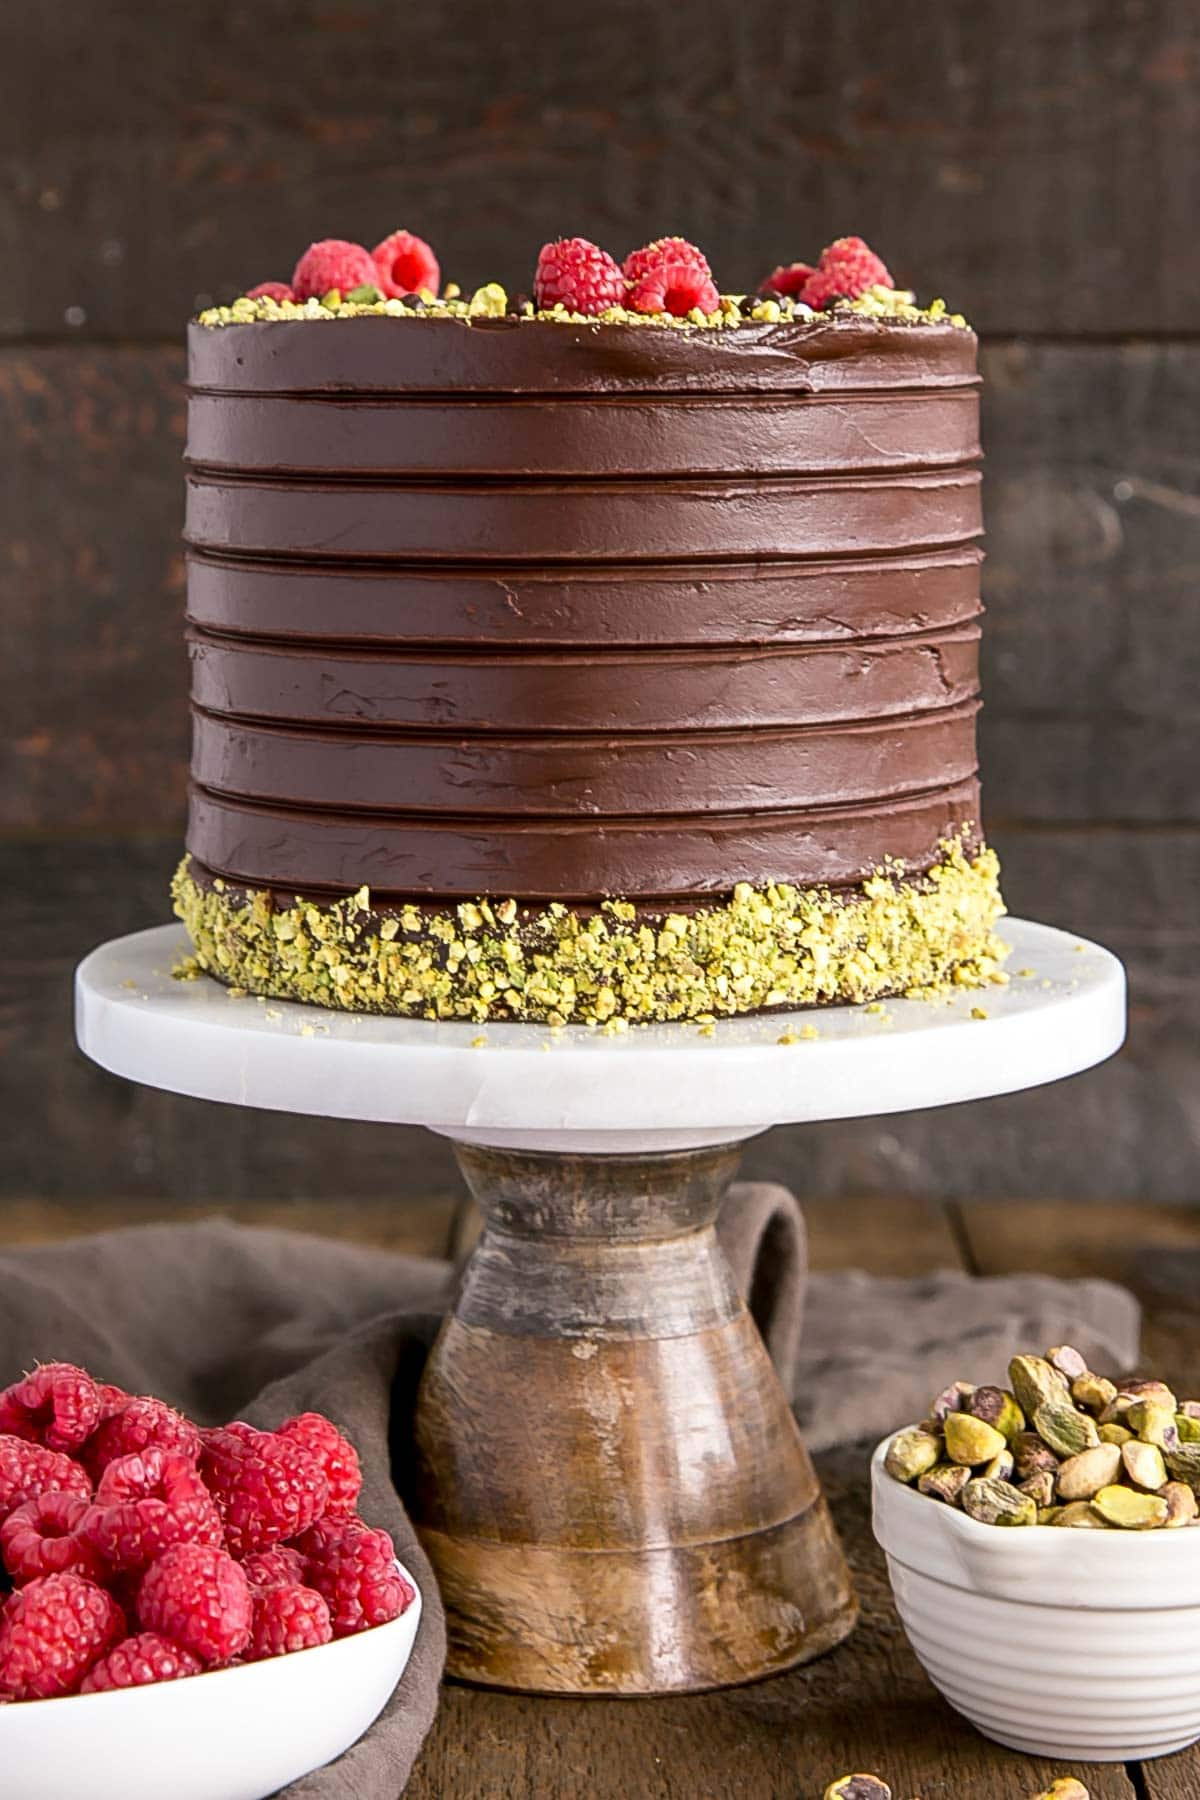 This Pistachio Cake with Dark Chocolate Ganache